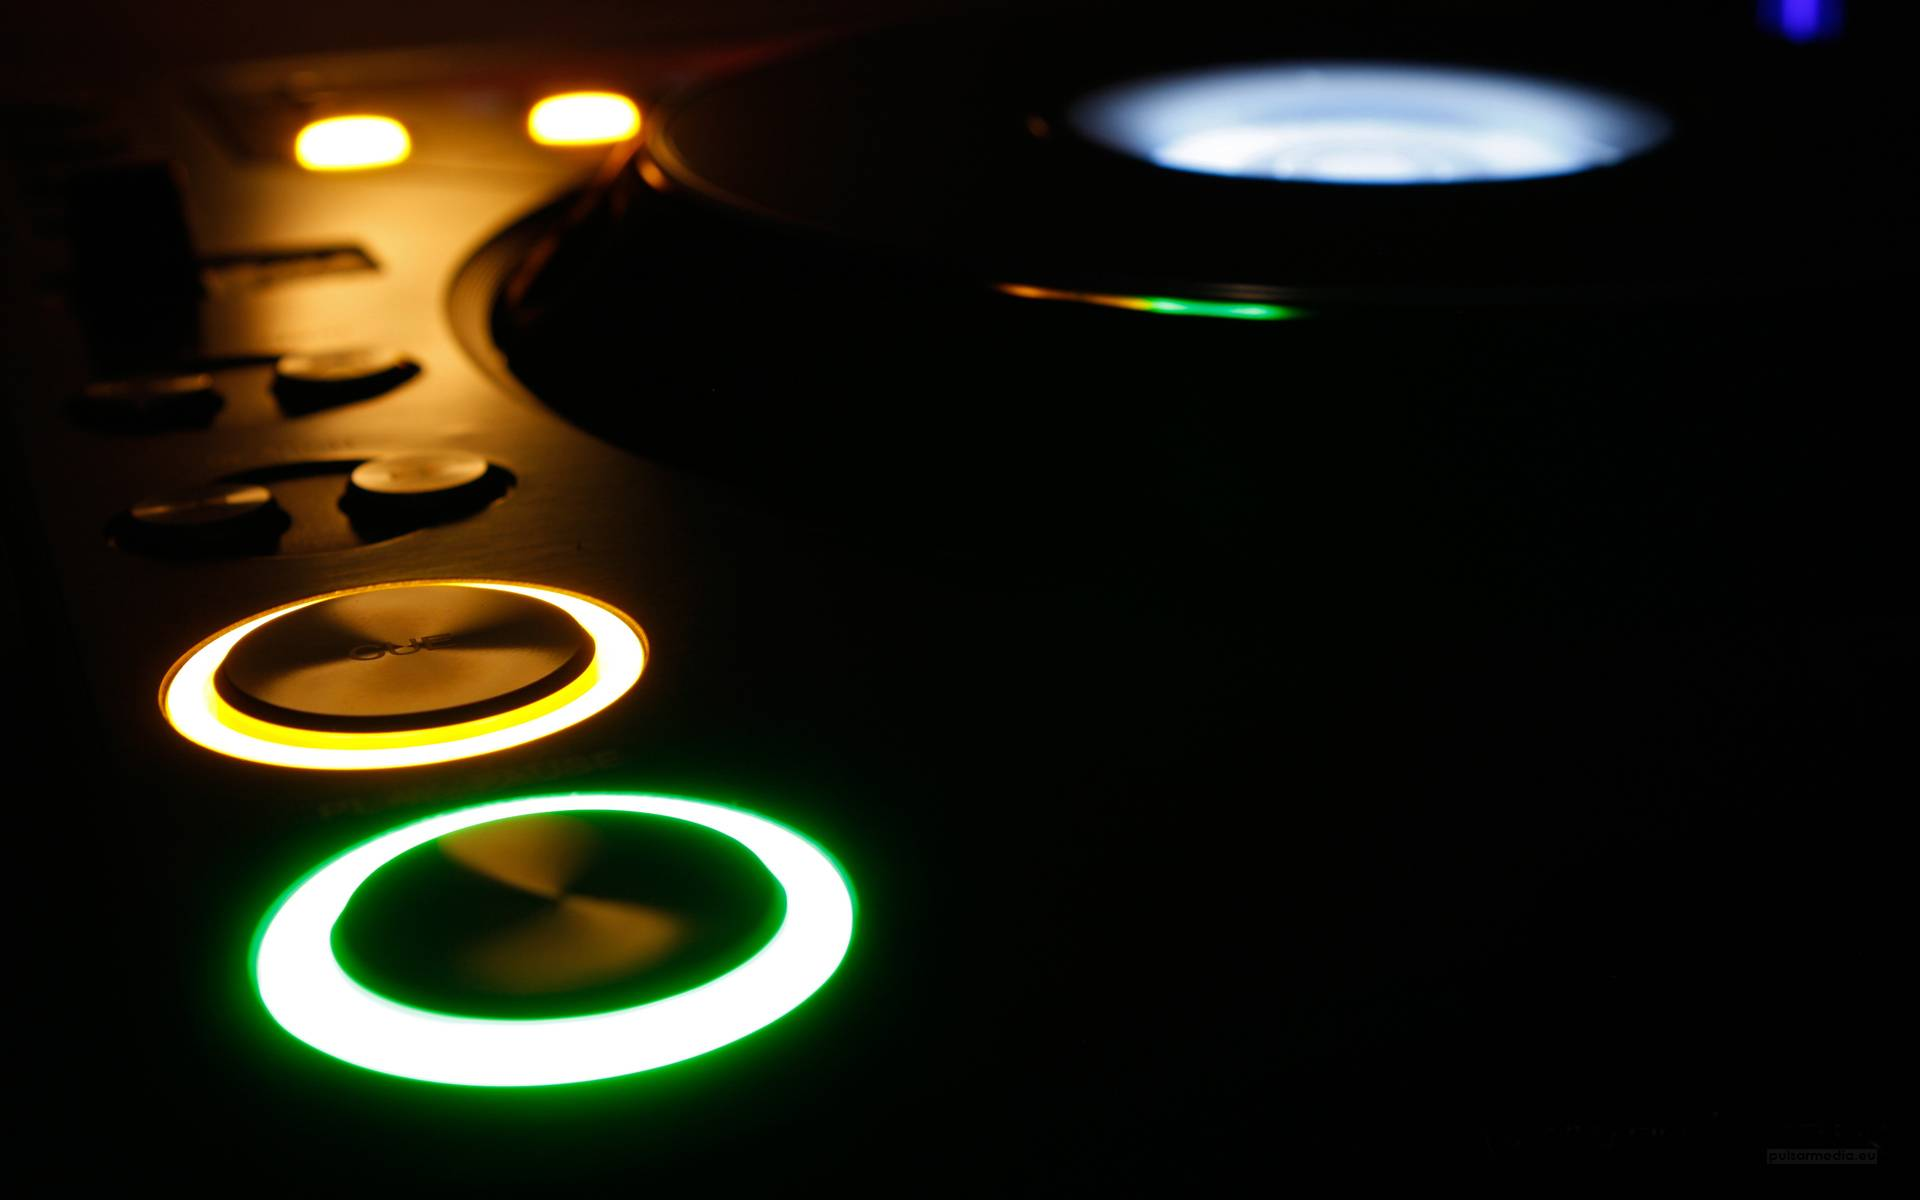 Cool Music Backgrounds Wallpapers 1920x1200